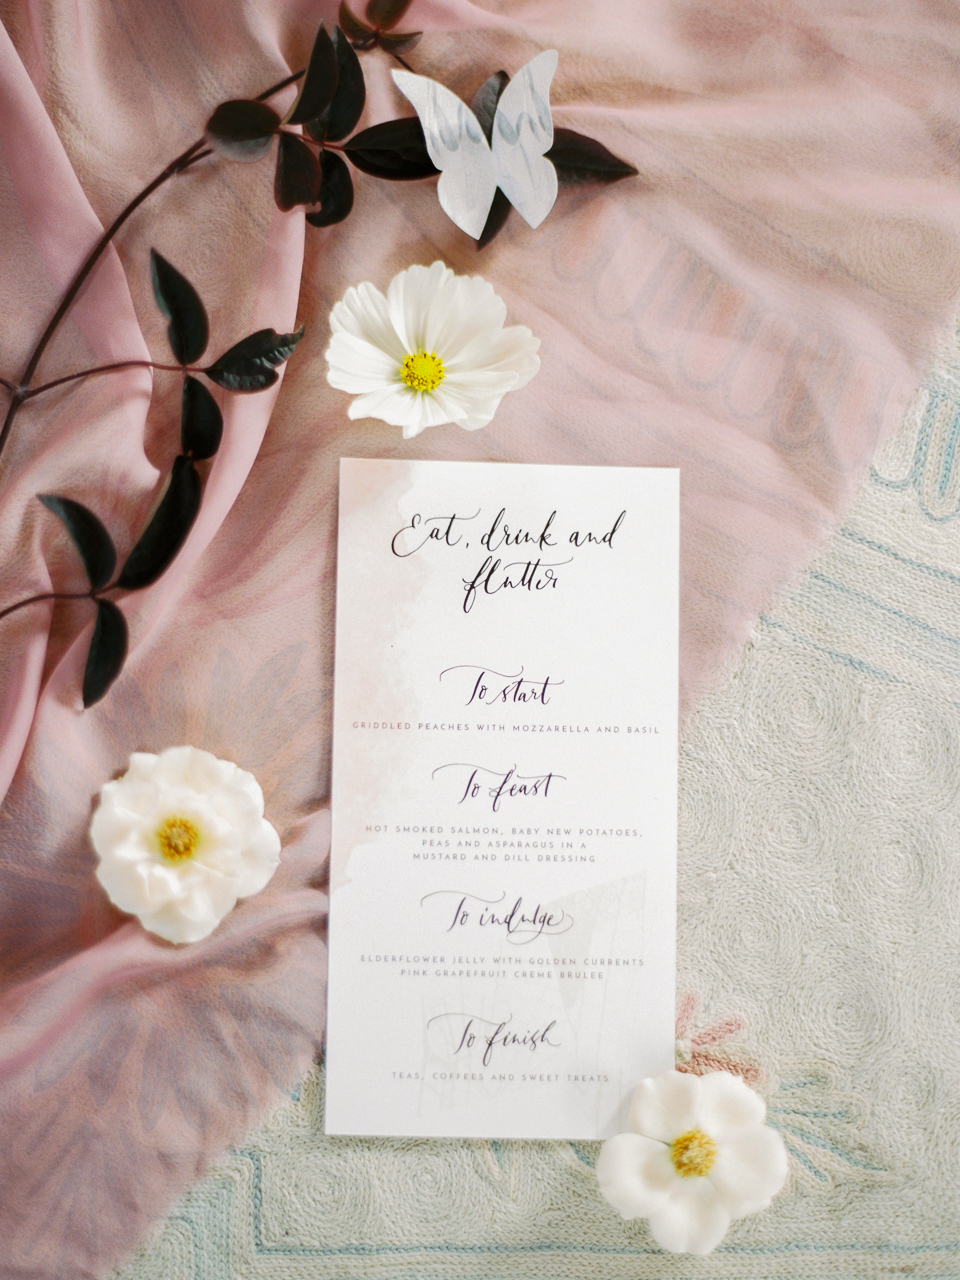 Photography by Marion Heurteboust. Styled by Knot and Pop. Calligraphy by Lamplighter London.